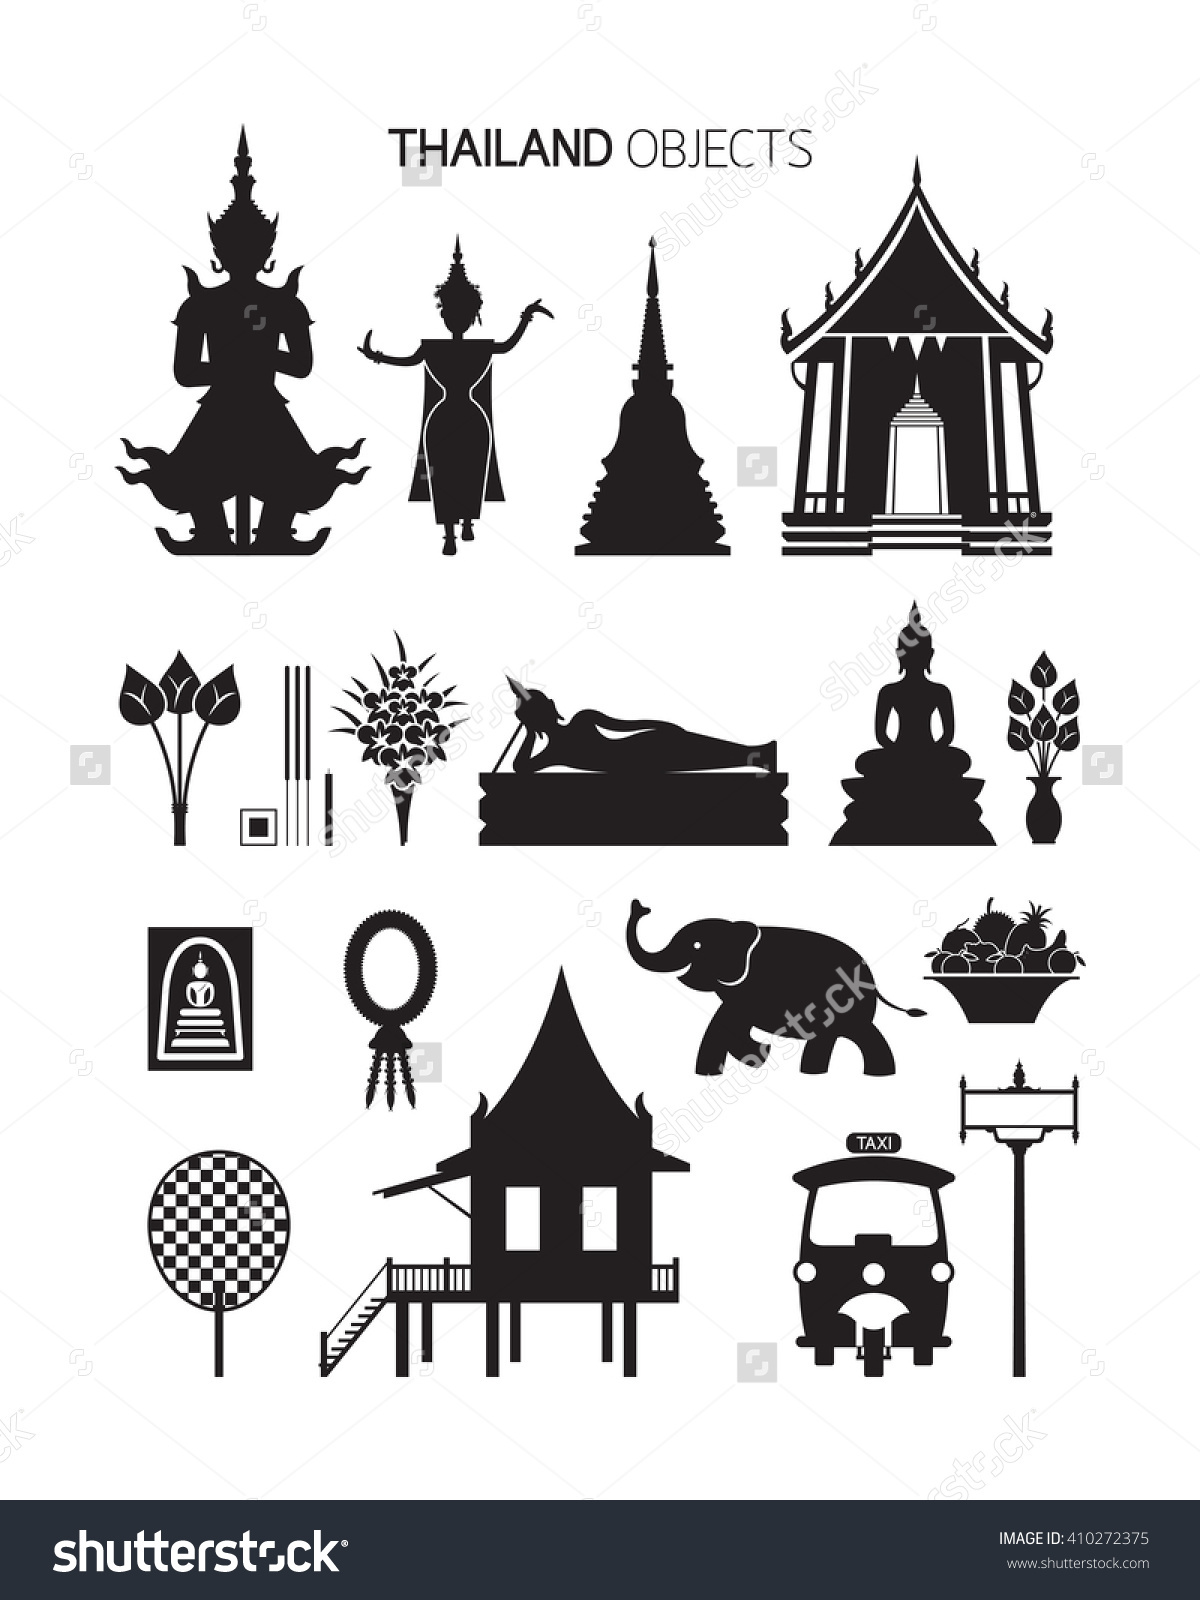 Thailand Culture Objects Silhouette Set Traditional Stock Vector.